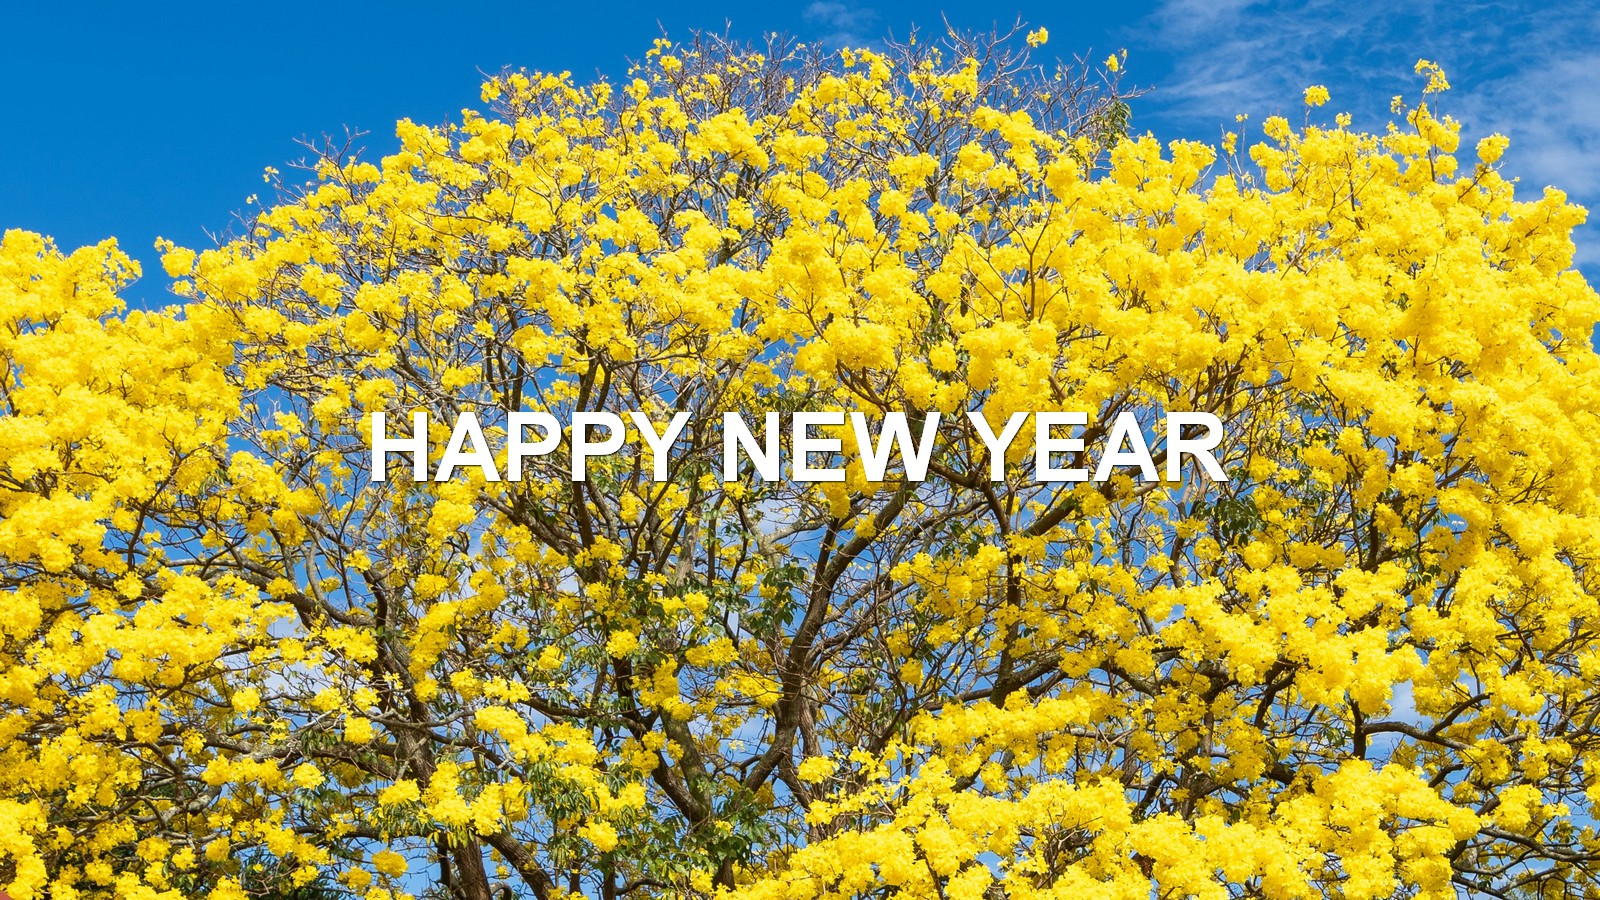 Flowering tree, yellow flowers, with words: Happy New Year.